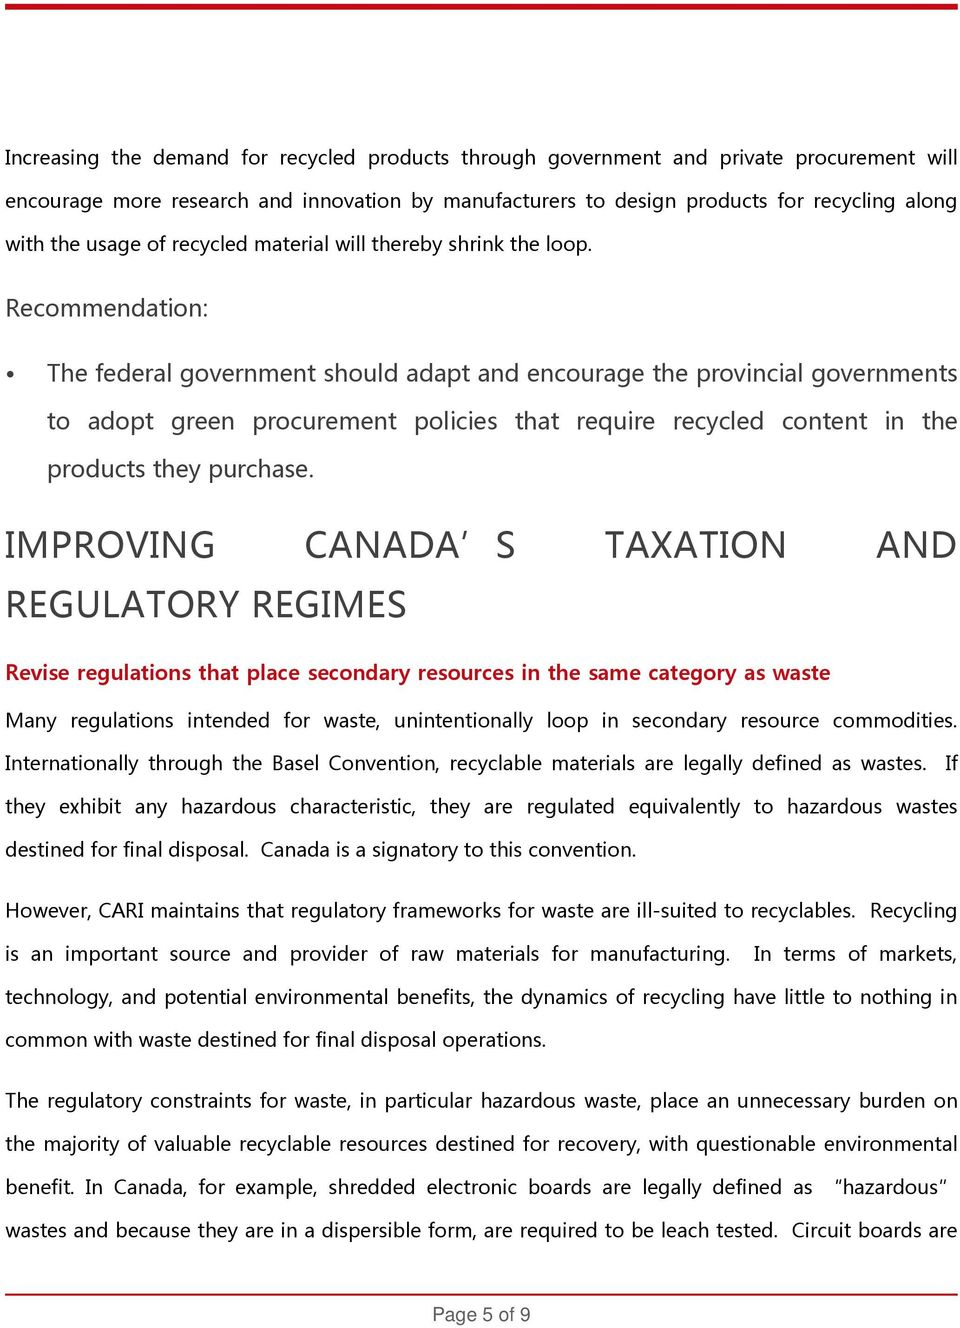 Recommendation: The federal government should adapt and encourage the provincial governments to adopt green procurement policies that require recycled content in the products they purchase.